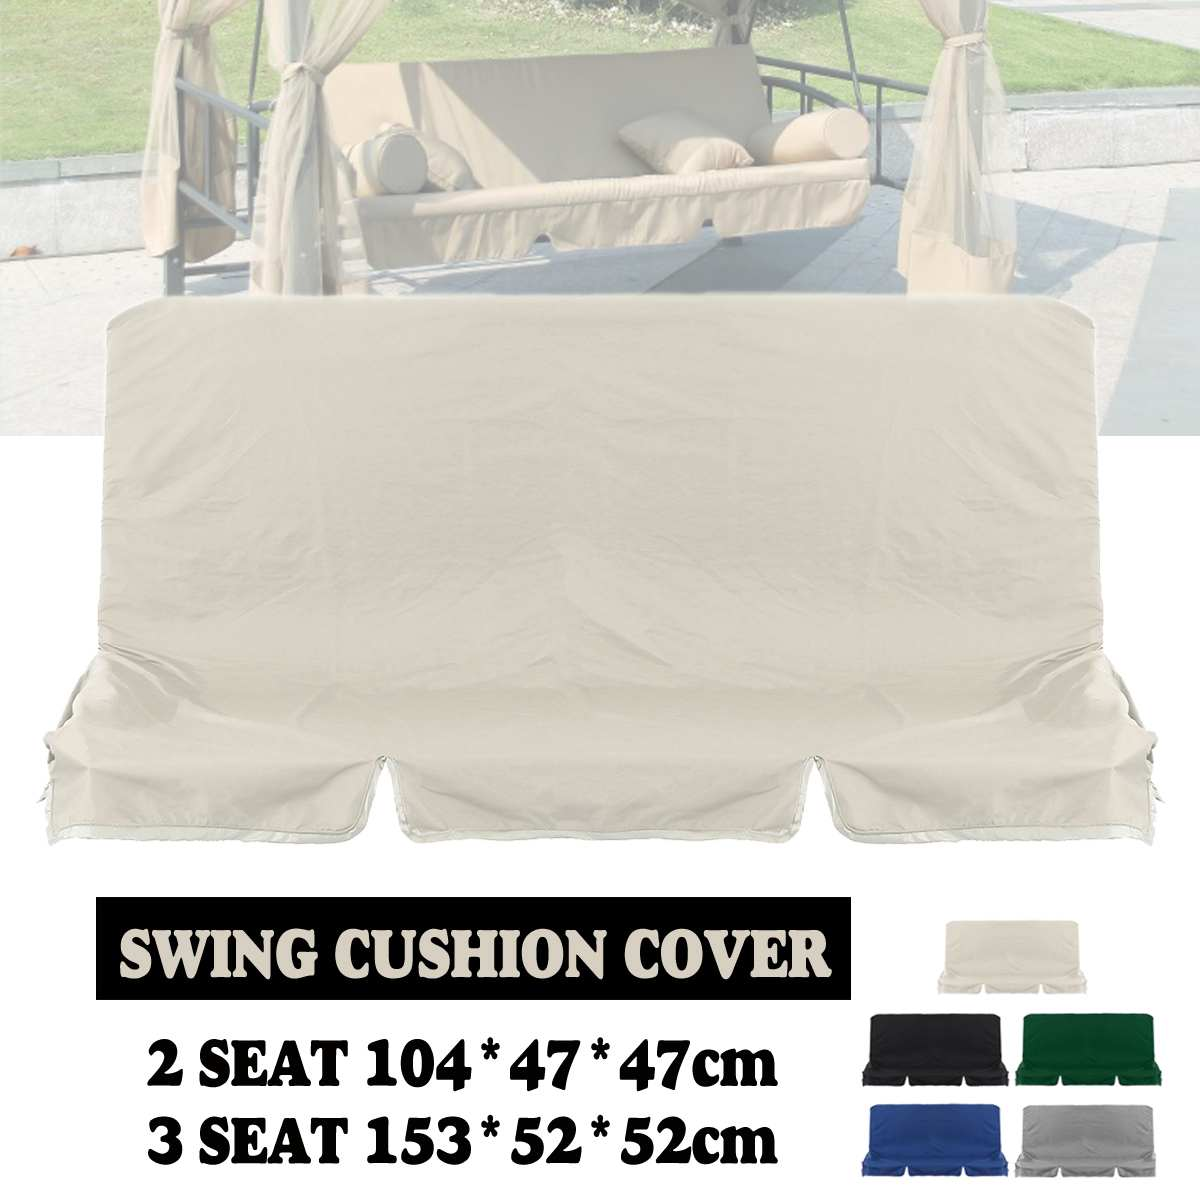 Swing-Cushion Dust-Covers Spare-Fabric-Cover Waterproof Canopy Chair-Replacement 5-Colors